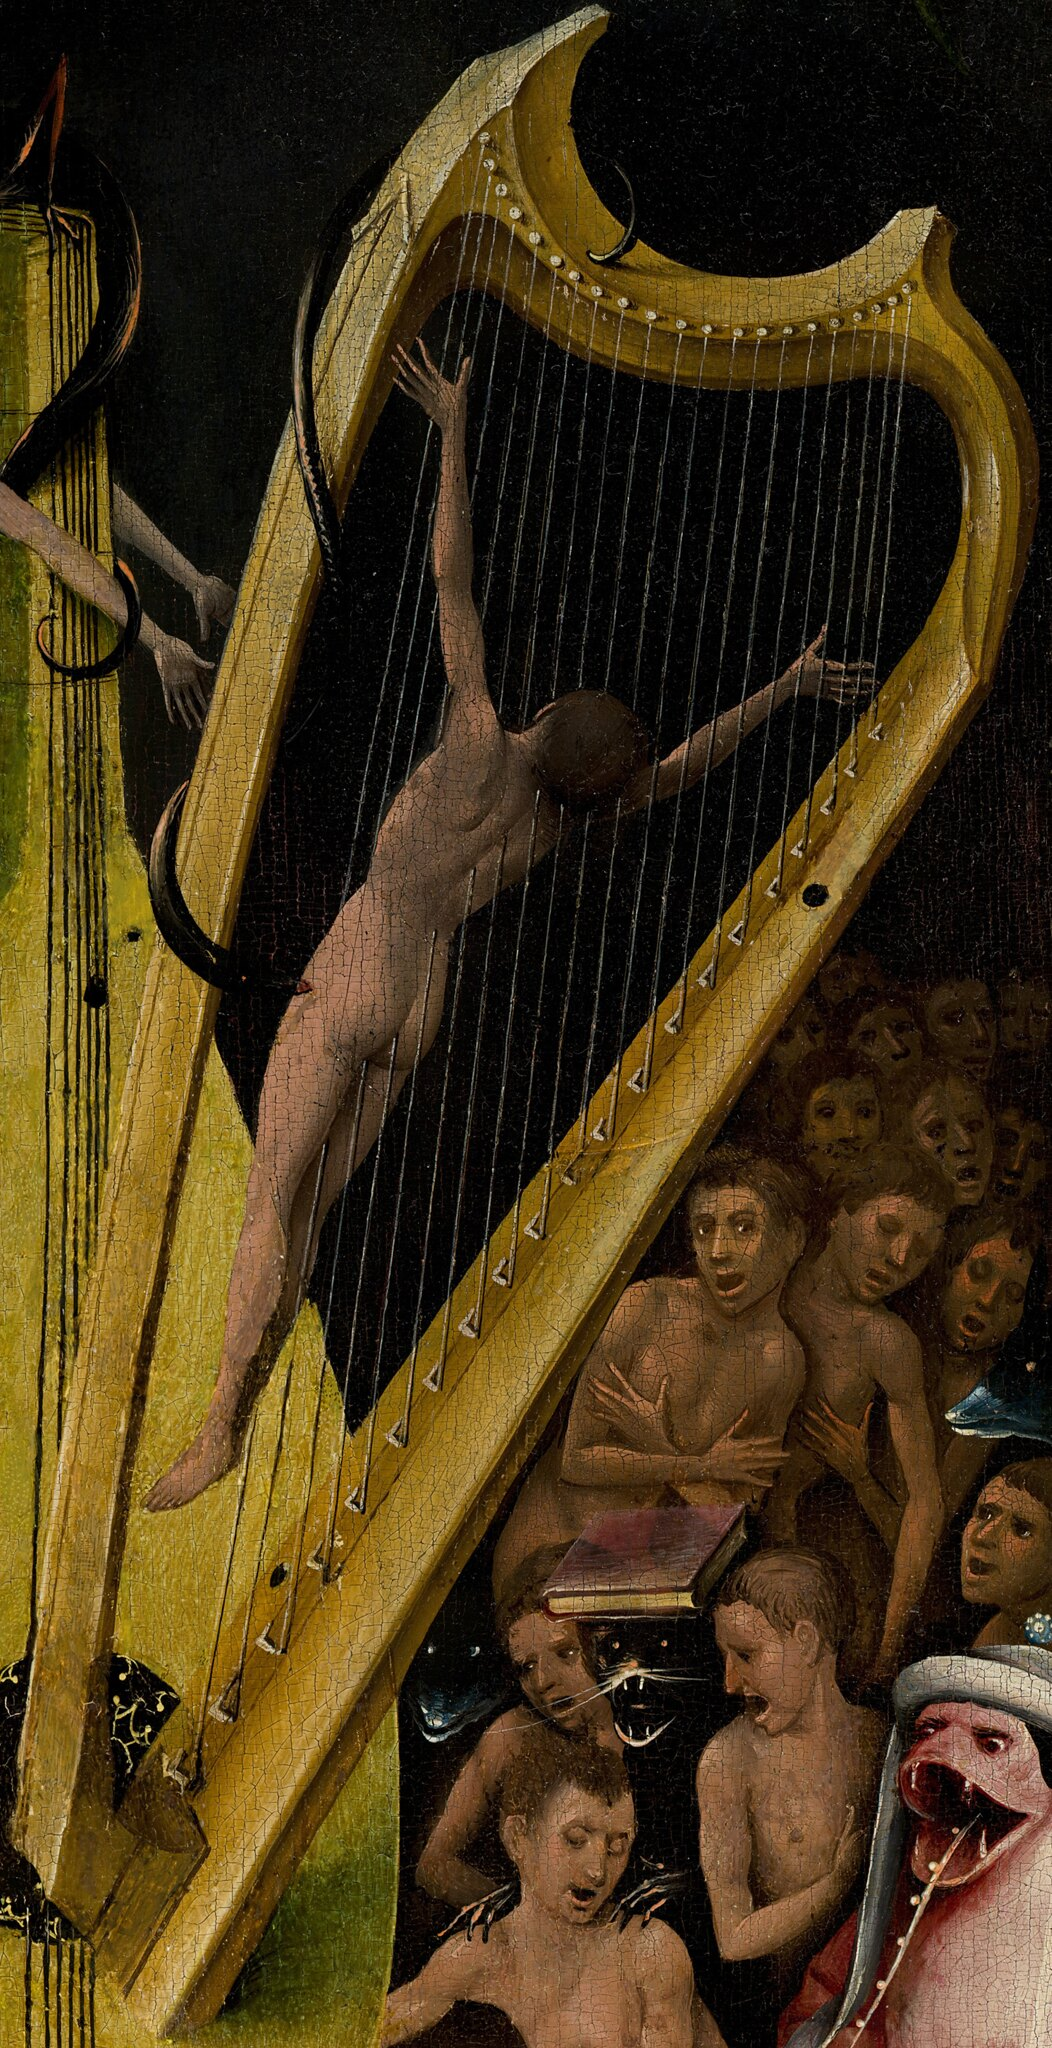 The Hell Harp of Hieronymus Bosch